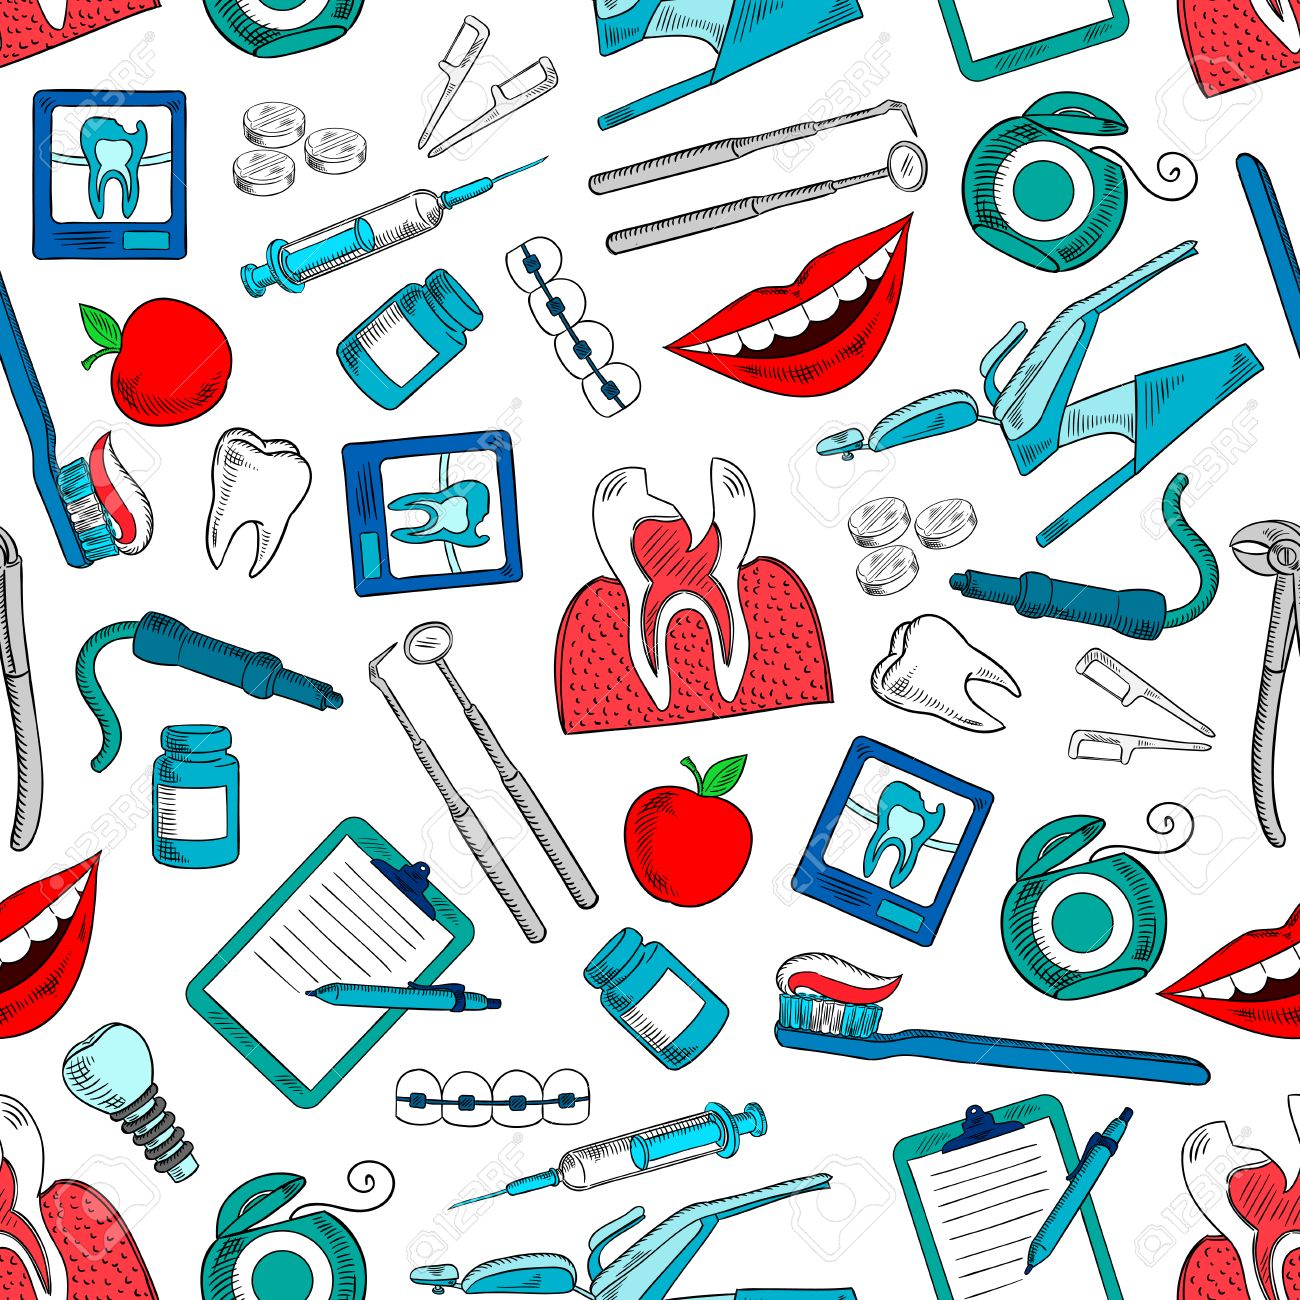 Stomatology And Dentistry Seamless Background Wallpaper With Royalty Free Cliparts Vectors And Stock Illustration Image 61500170